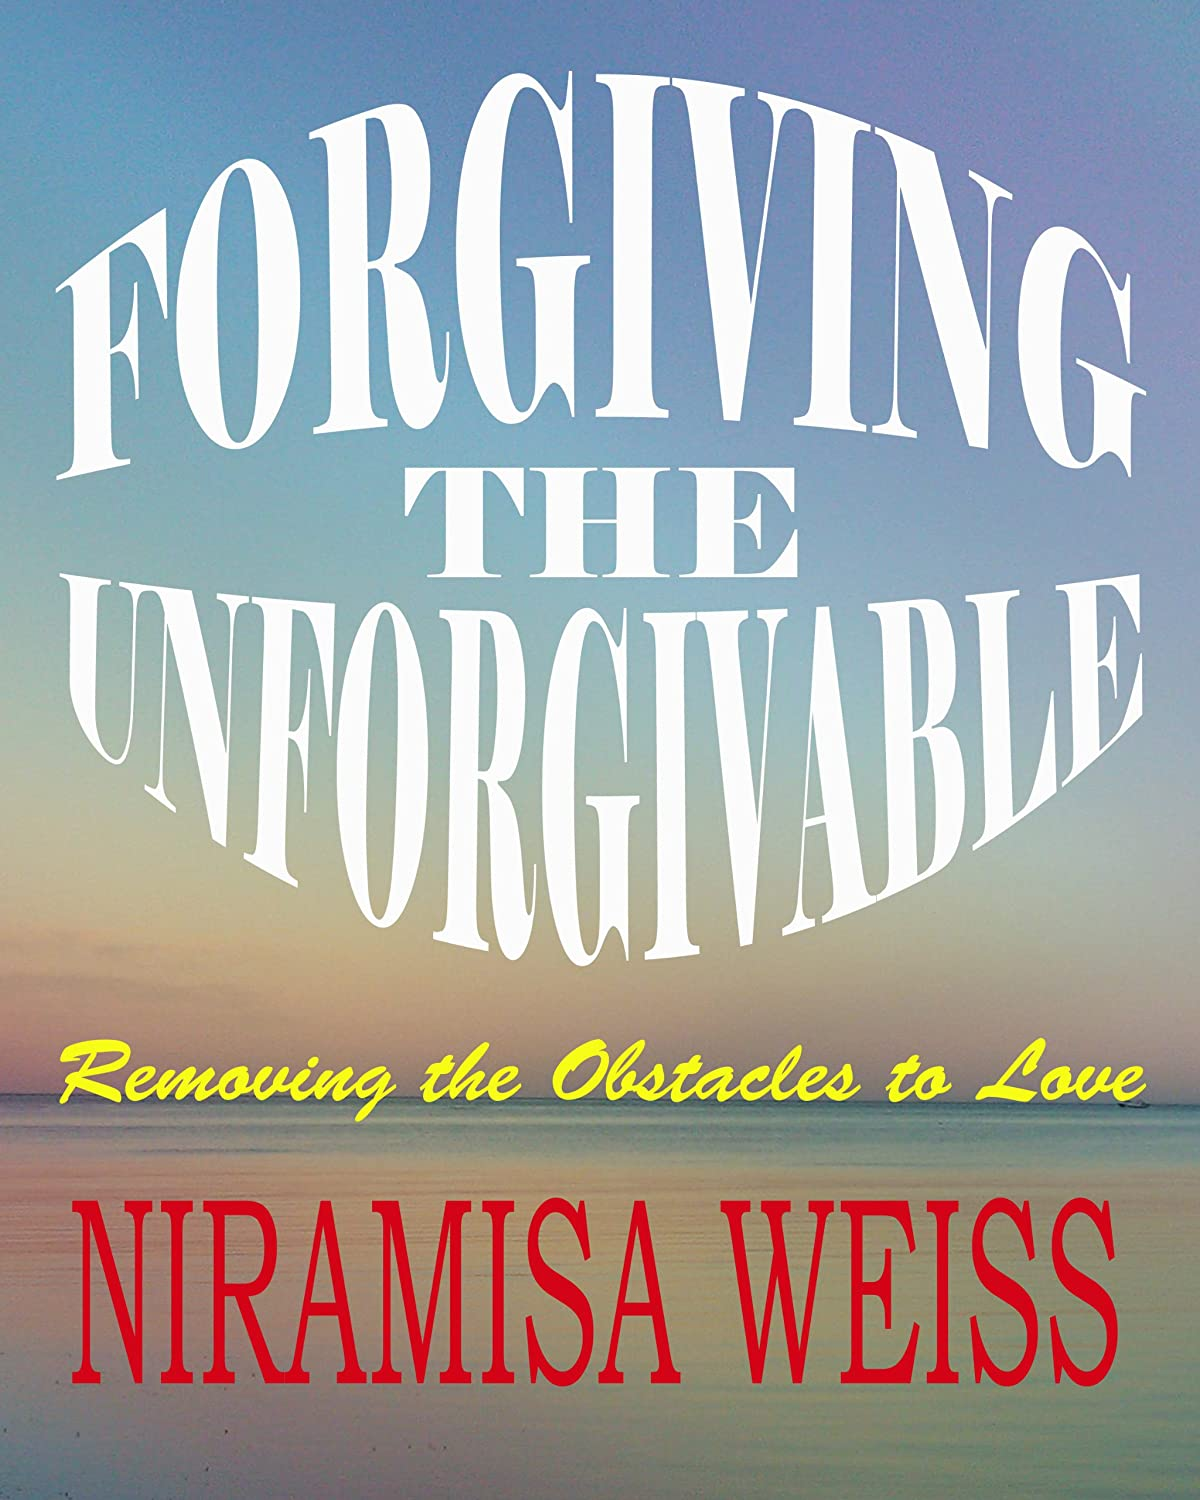 Forgiving The Unforgivable: Removing the Obstacles to Love